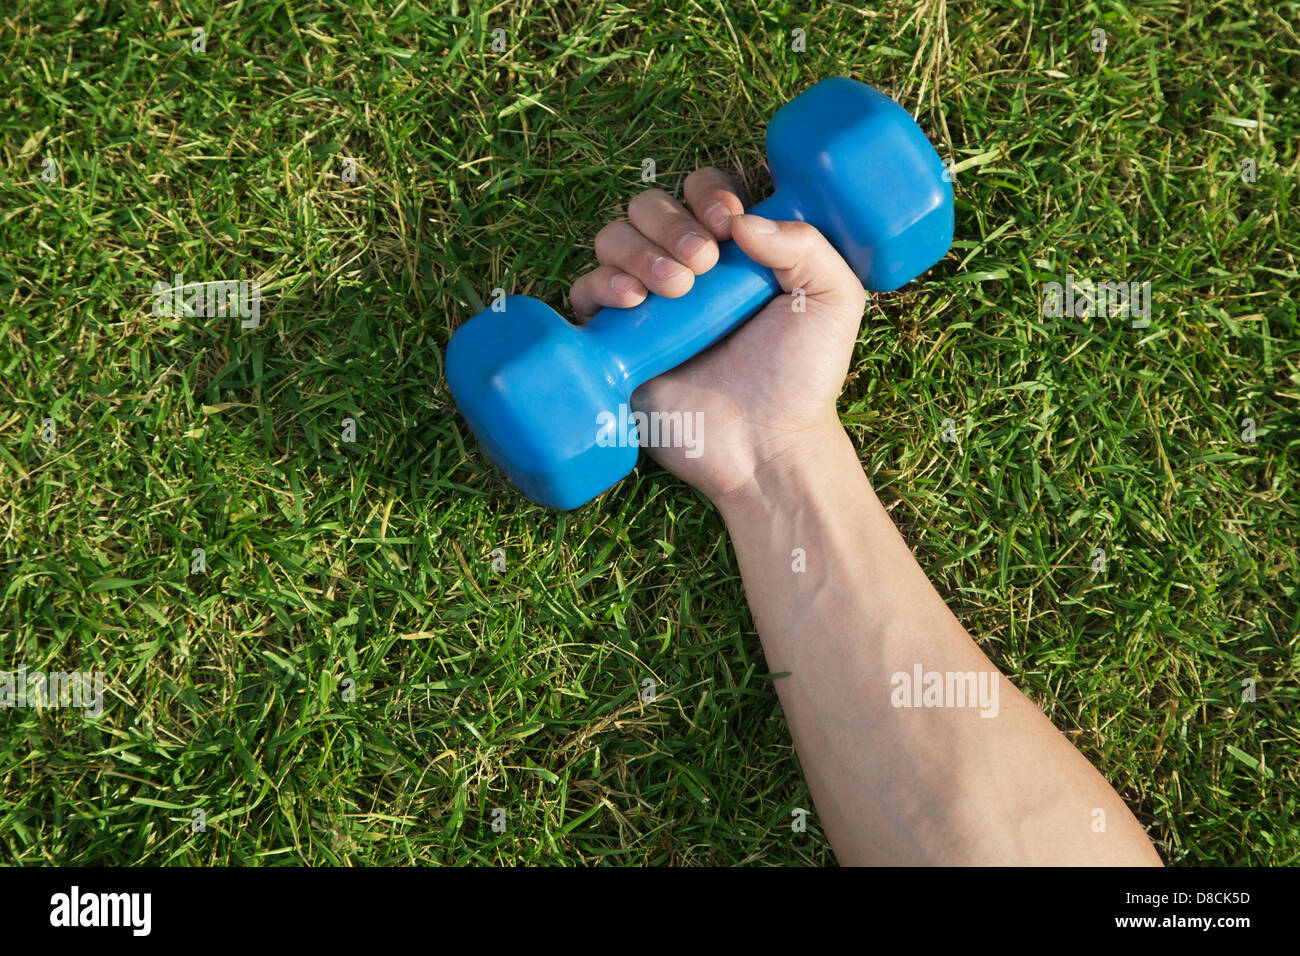 Close Up on Hand Holding Blue Dumbbell in Grass - Stock Image